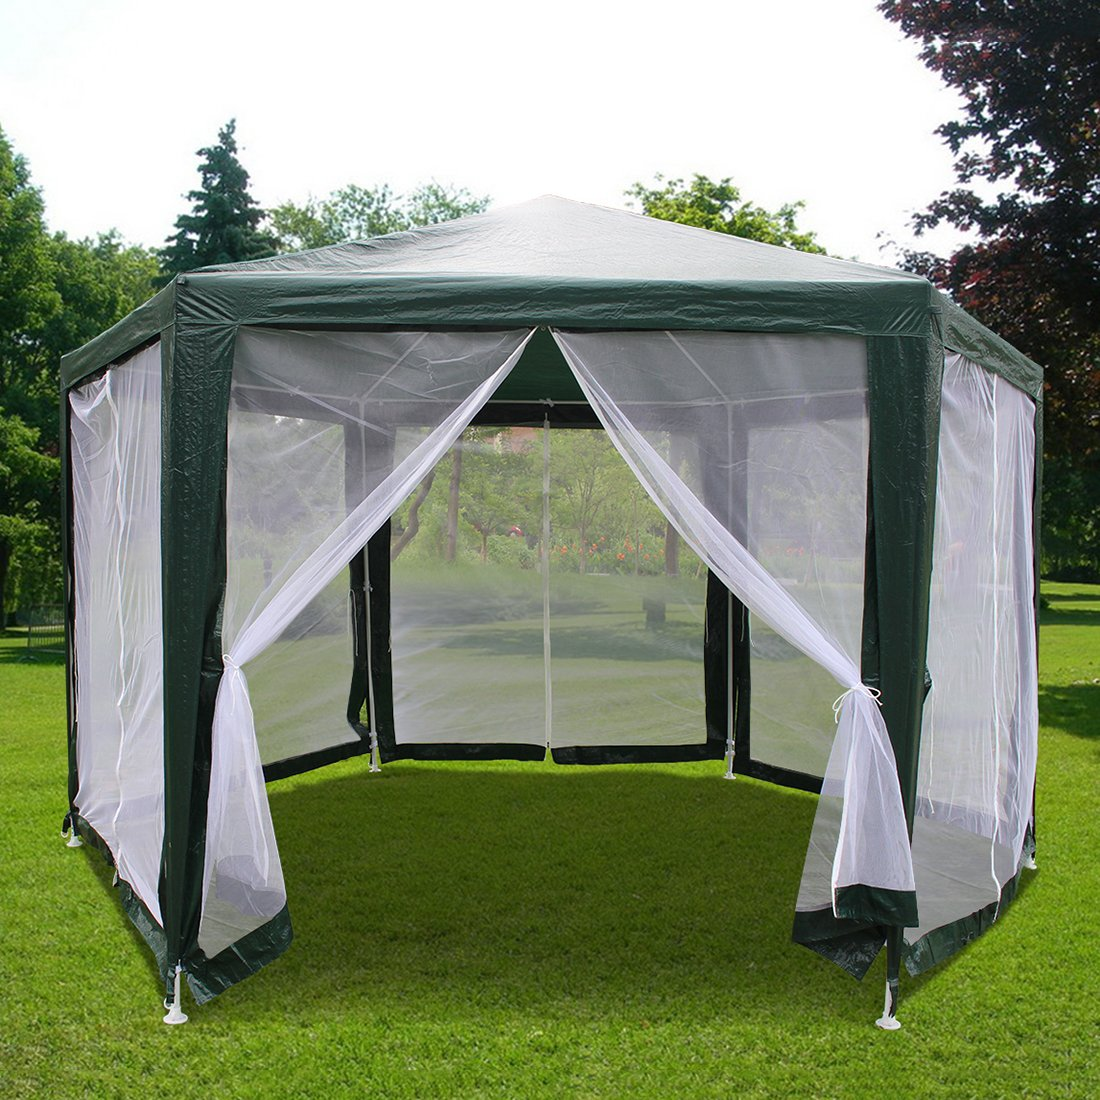 Quictent 6.6'x6.6'x6.6' Outdoor Hexagon Canopy Party tent Gazebo Sun Shade Shelter Screen House with Fully Enclosed Mesh Side Wall Green 1207-G